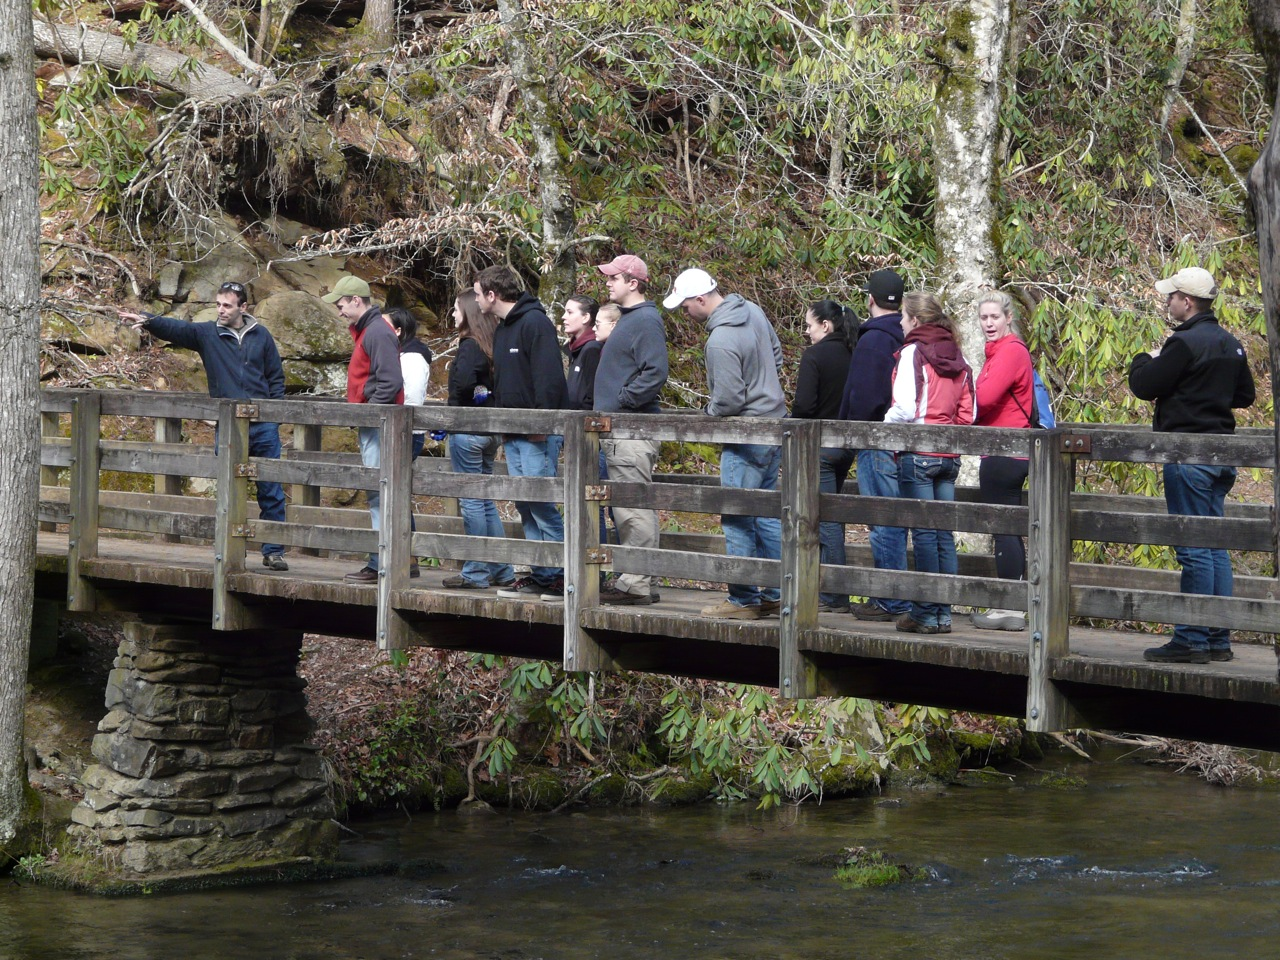 A group of people standing on a wooden footbridge over a creek.